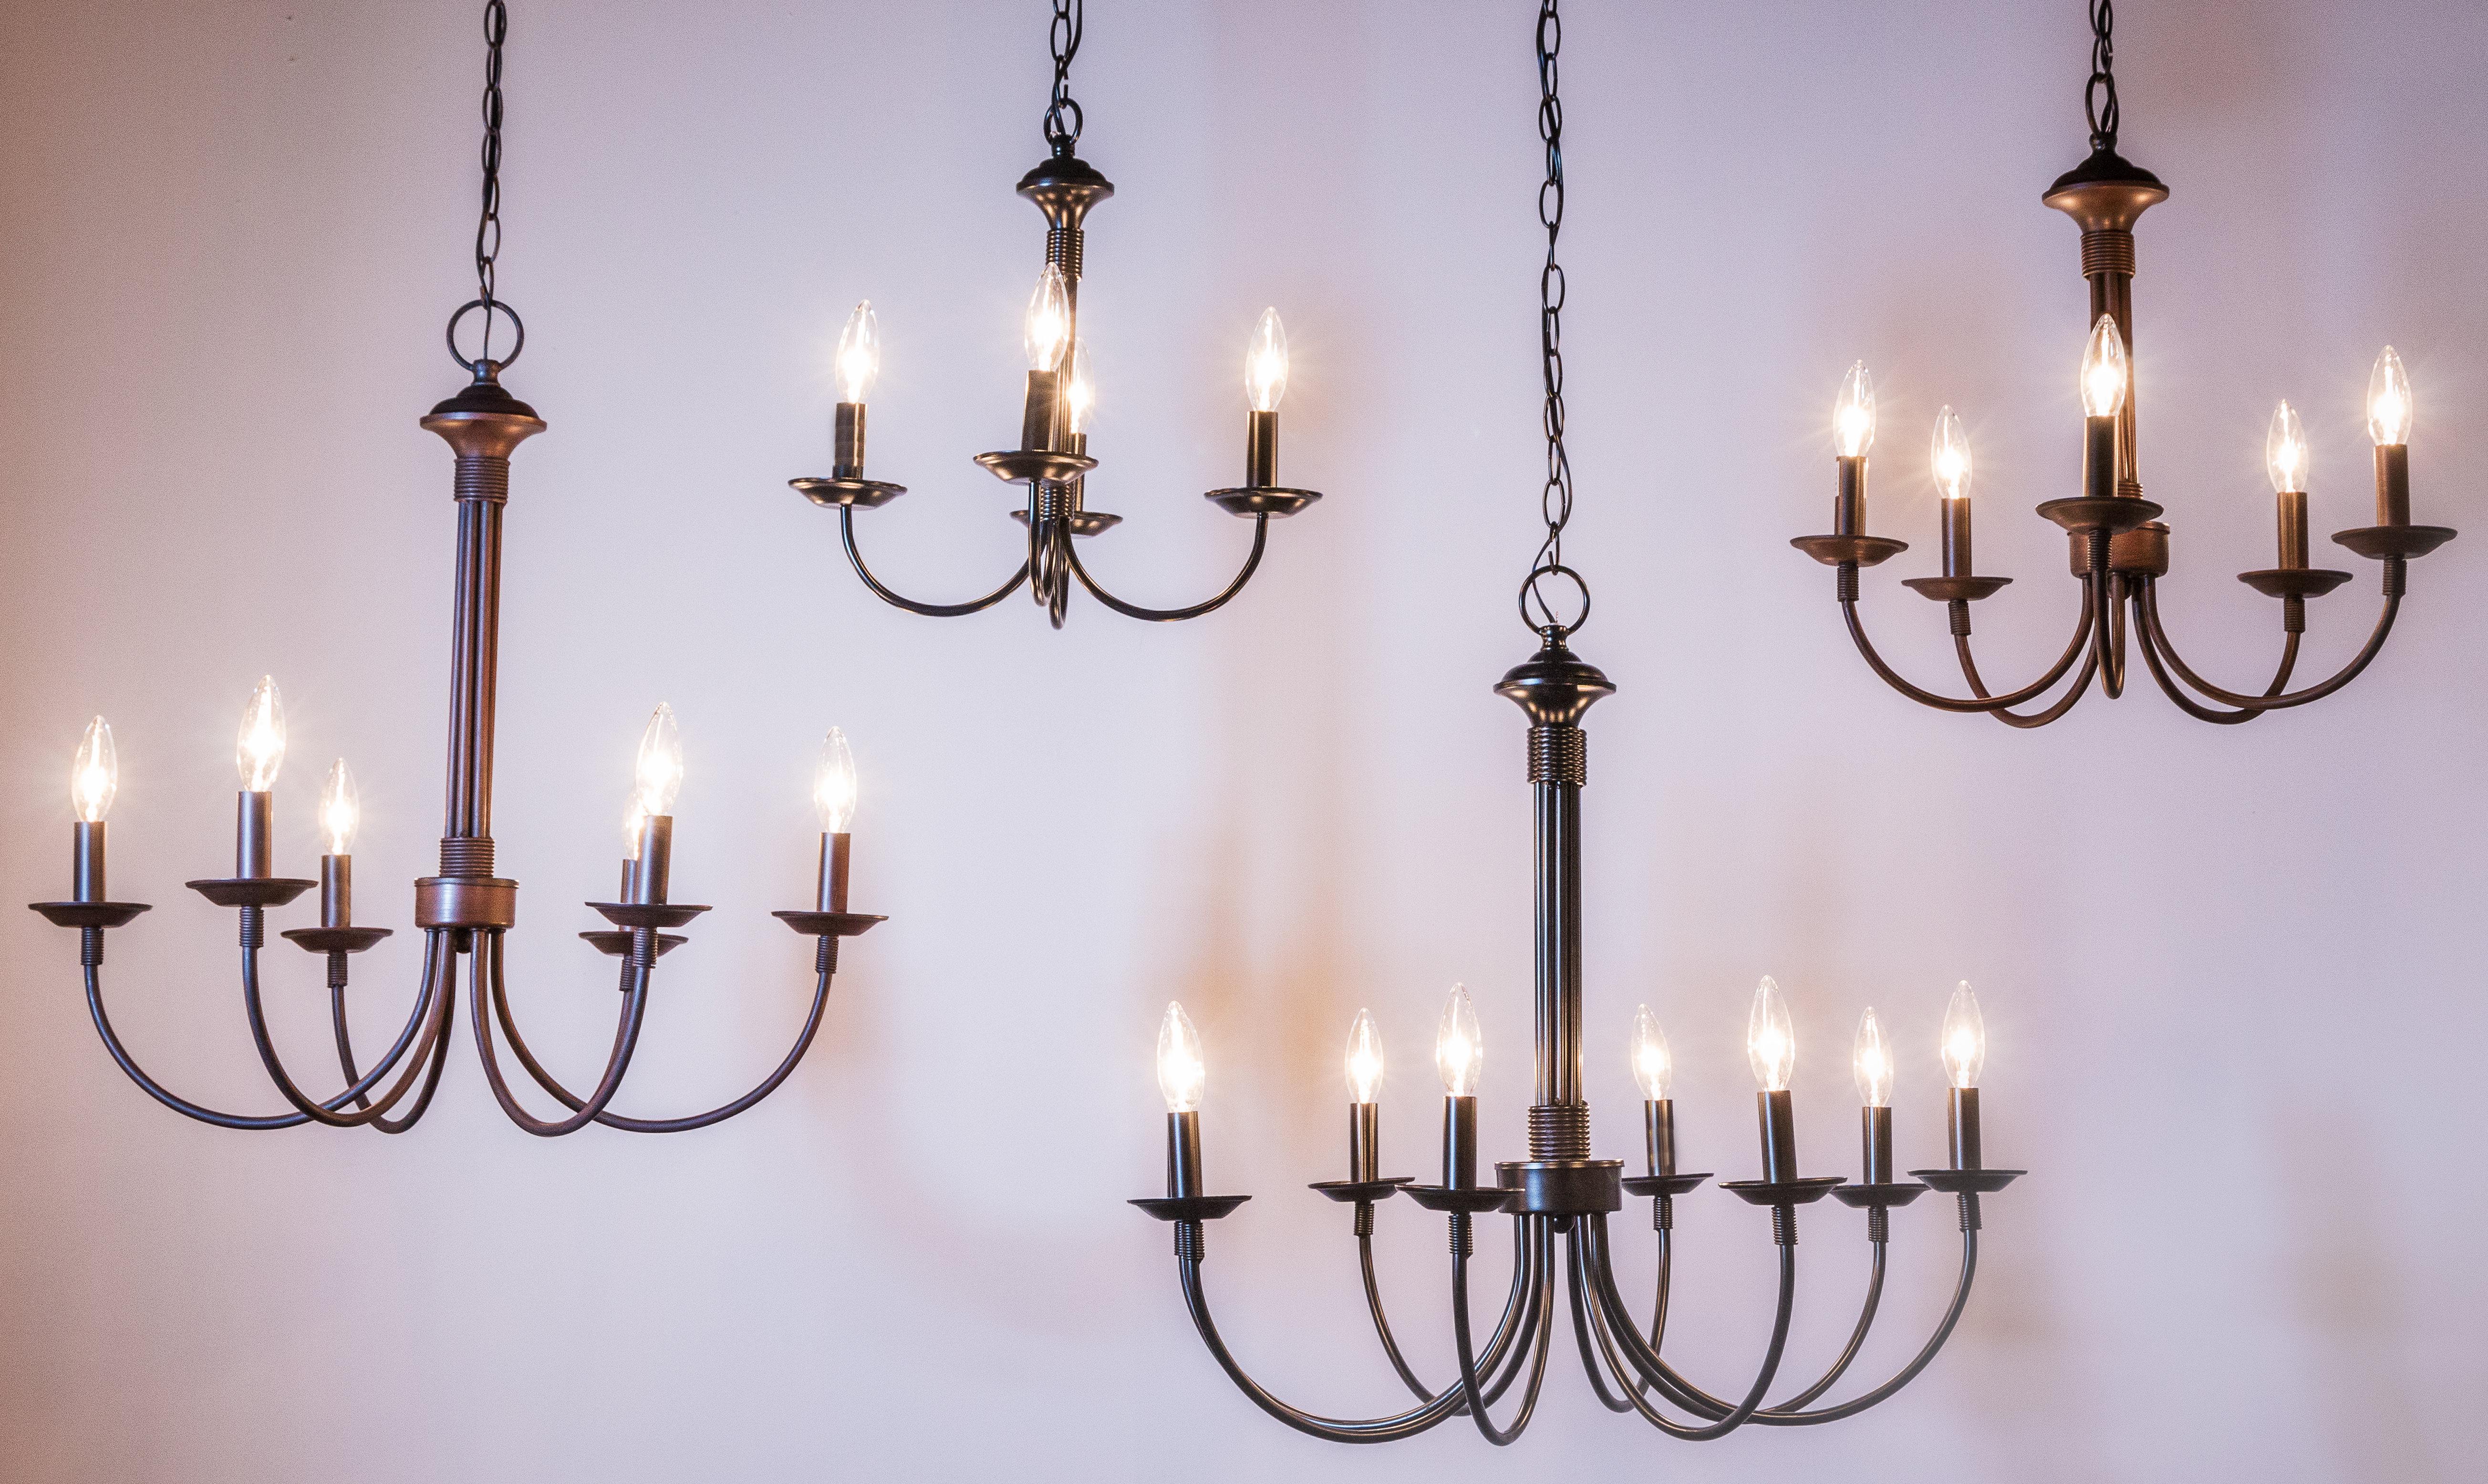 2019 Shaylee 5 Light Candle Style Chandelier Regarding Shaylee 8 Light Candle Style Chandeliers (View 11 of 25)